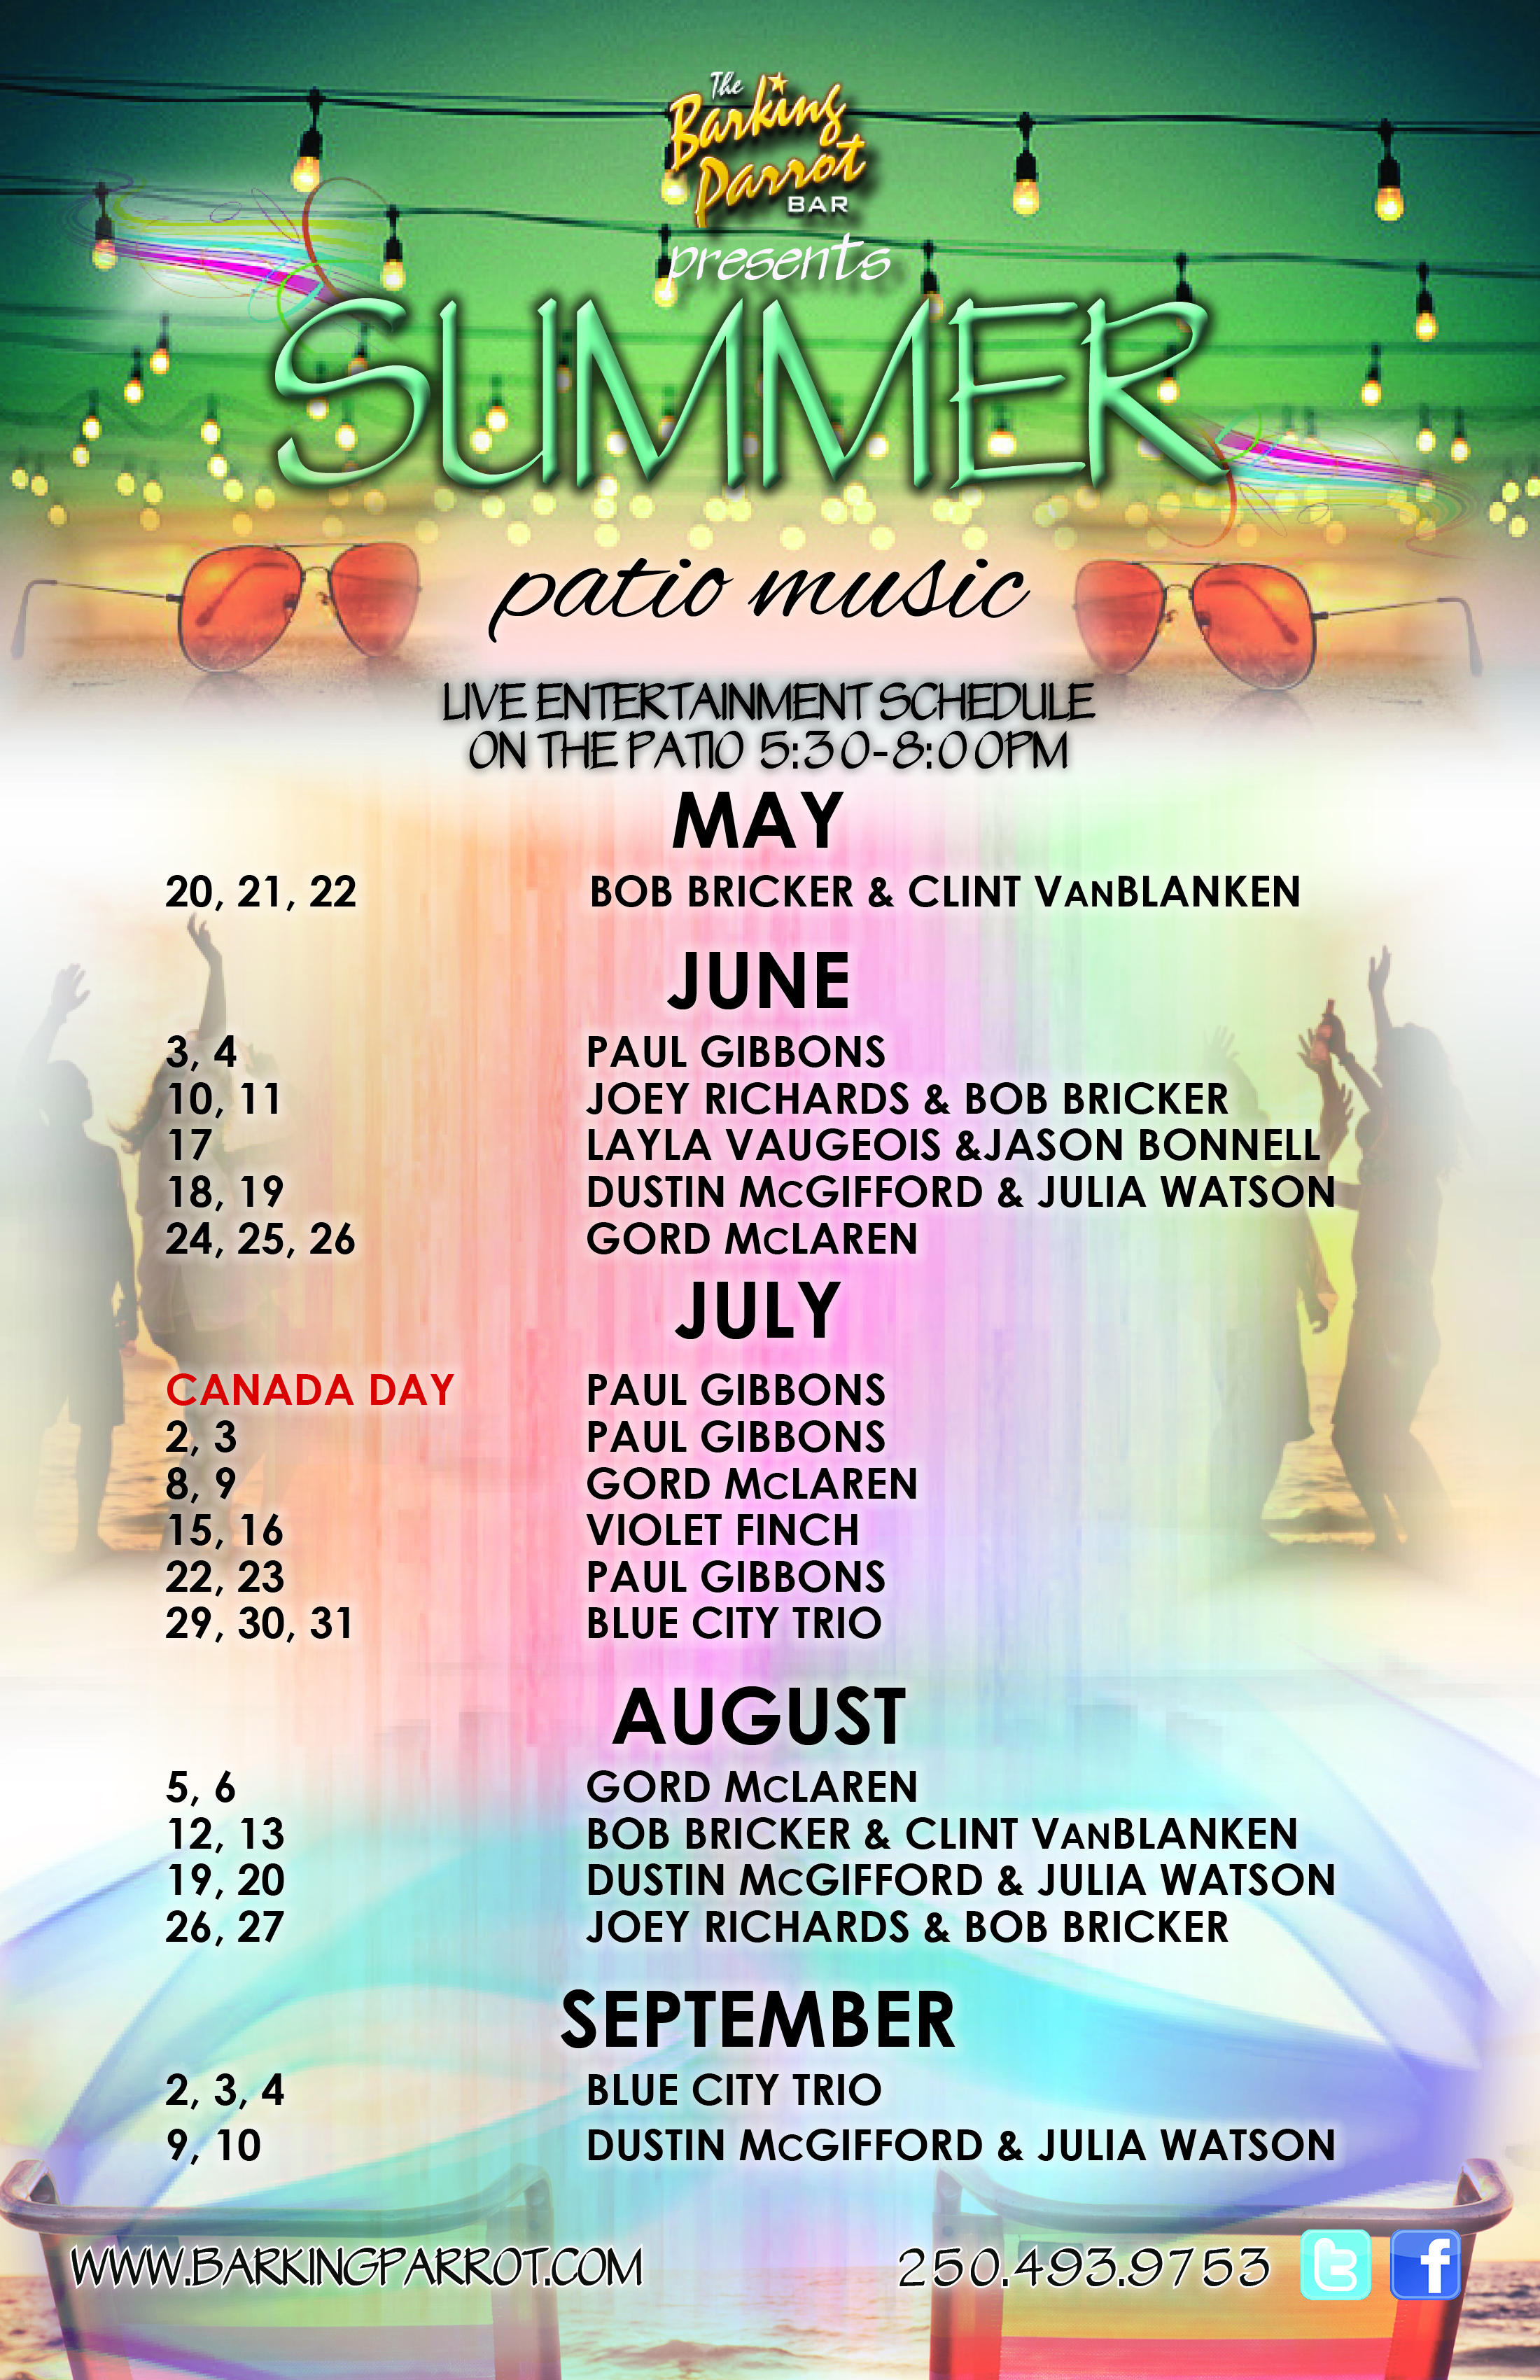 Summer_Patio_Music_Poster_2016